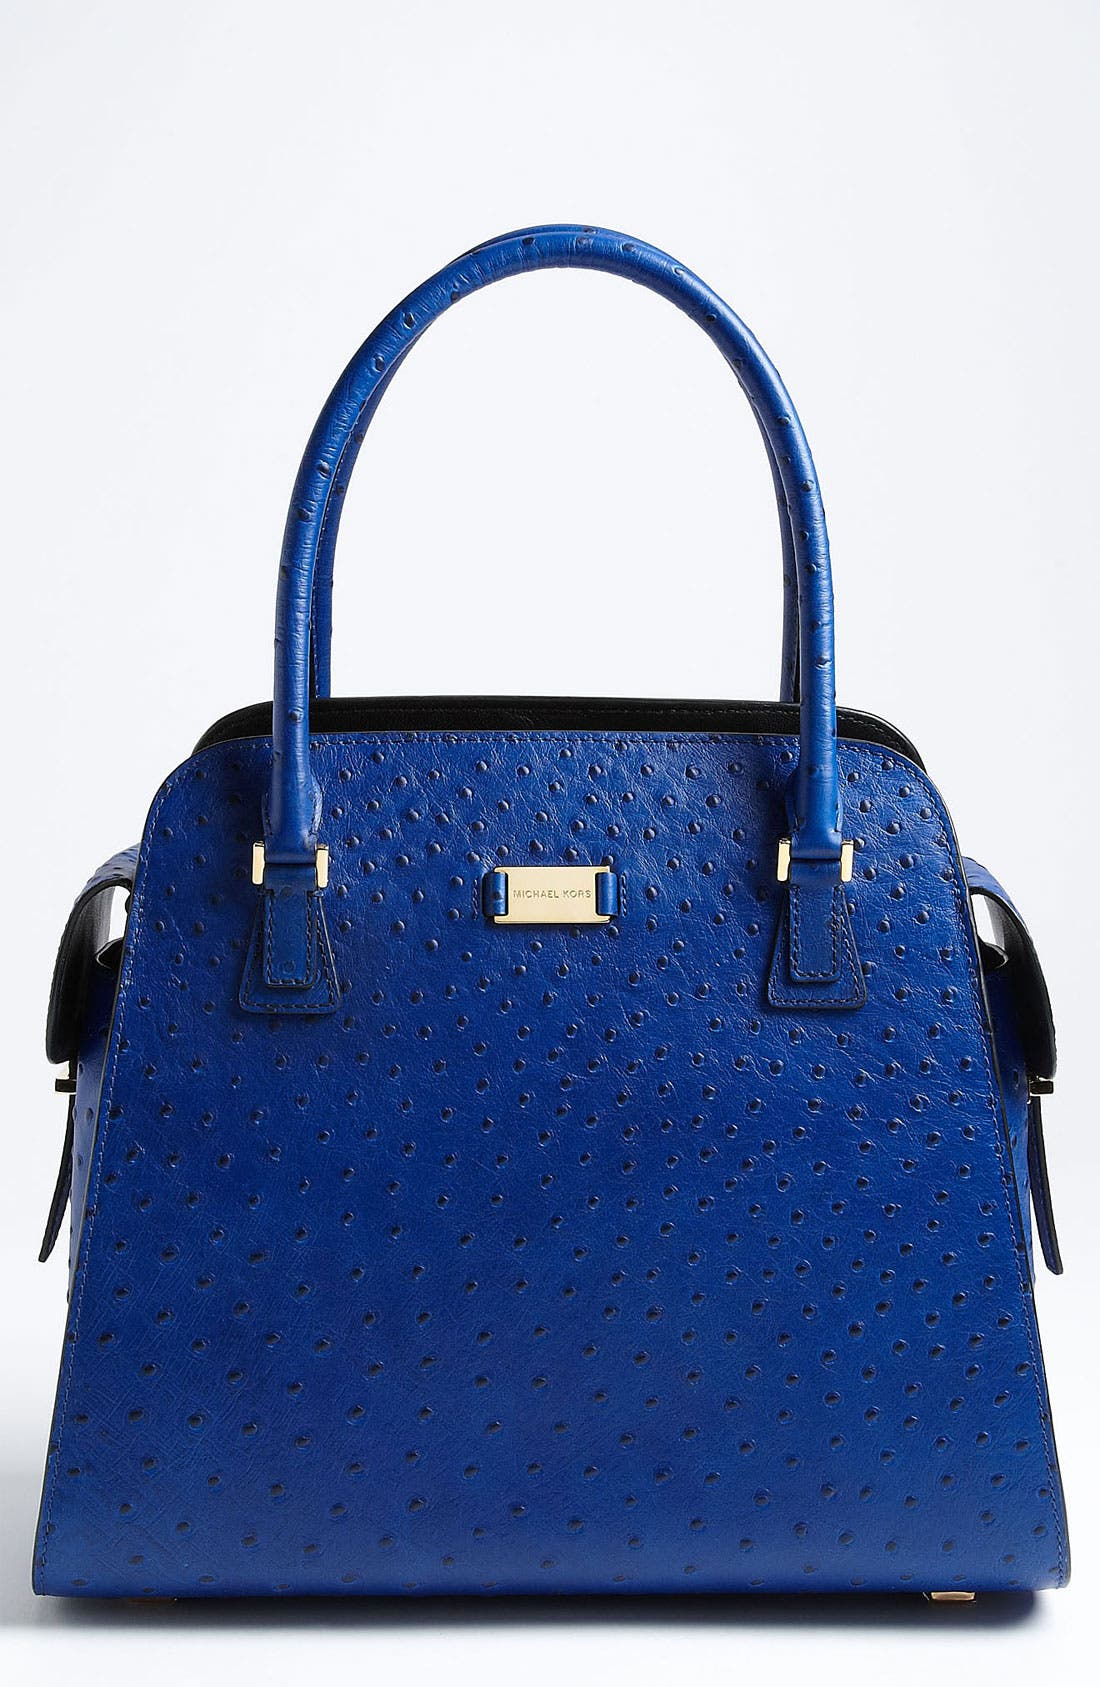 Main Image - Michael Kors 'Gia' Ostrich Embossed Satchel